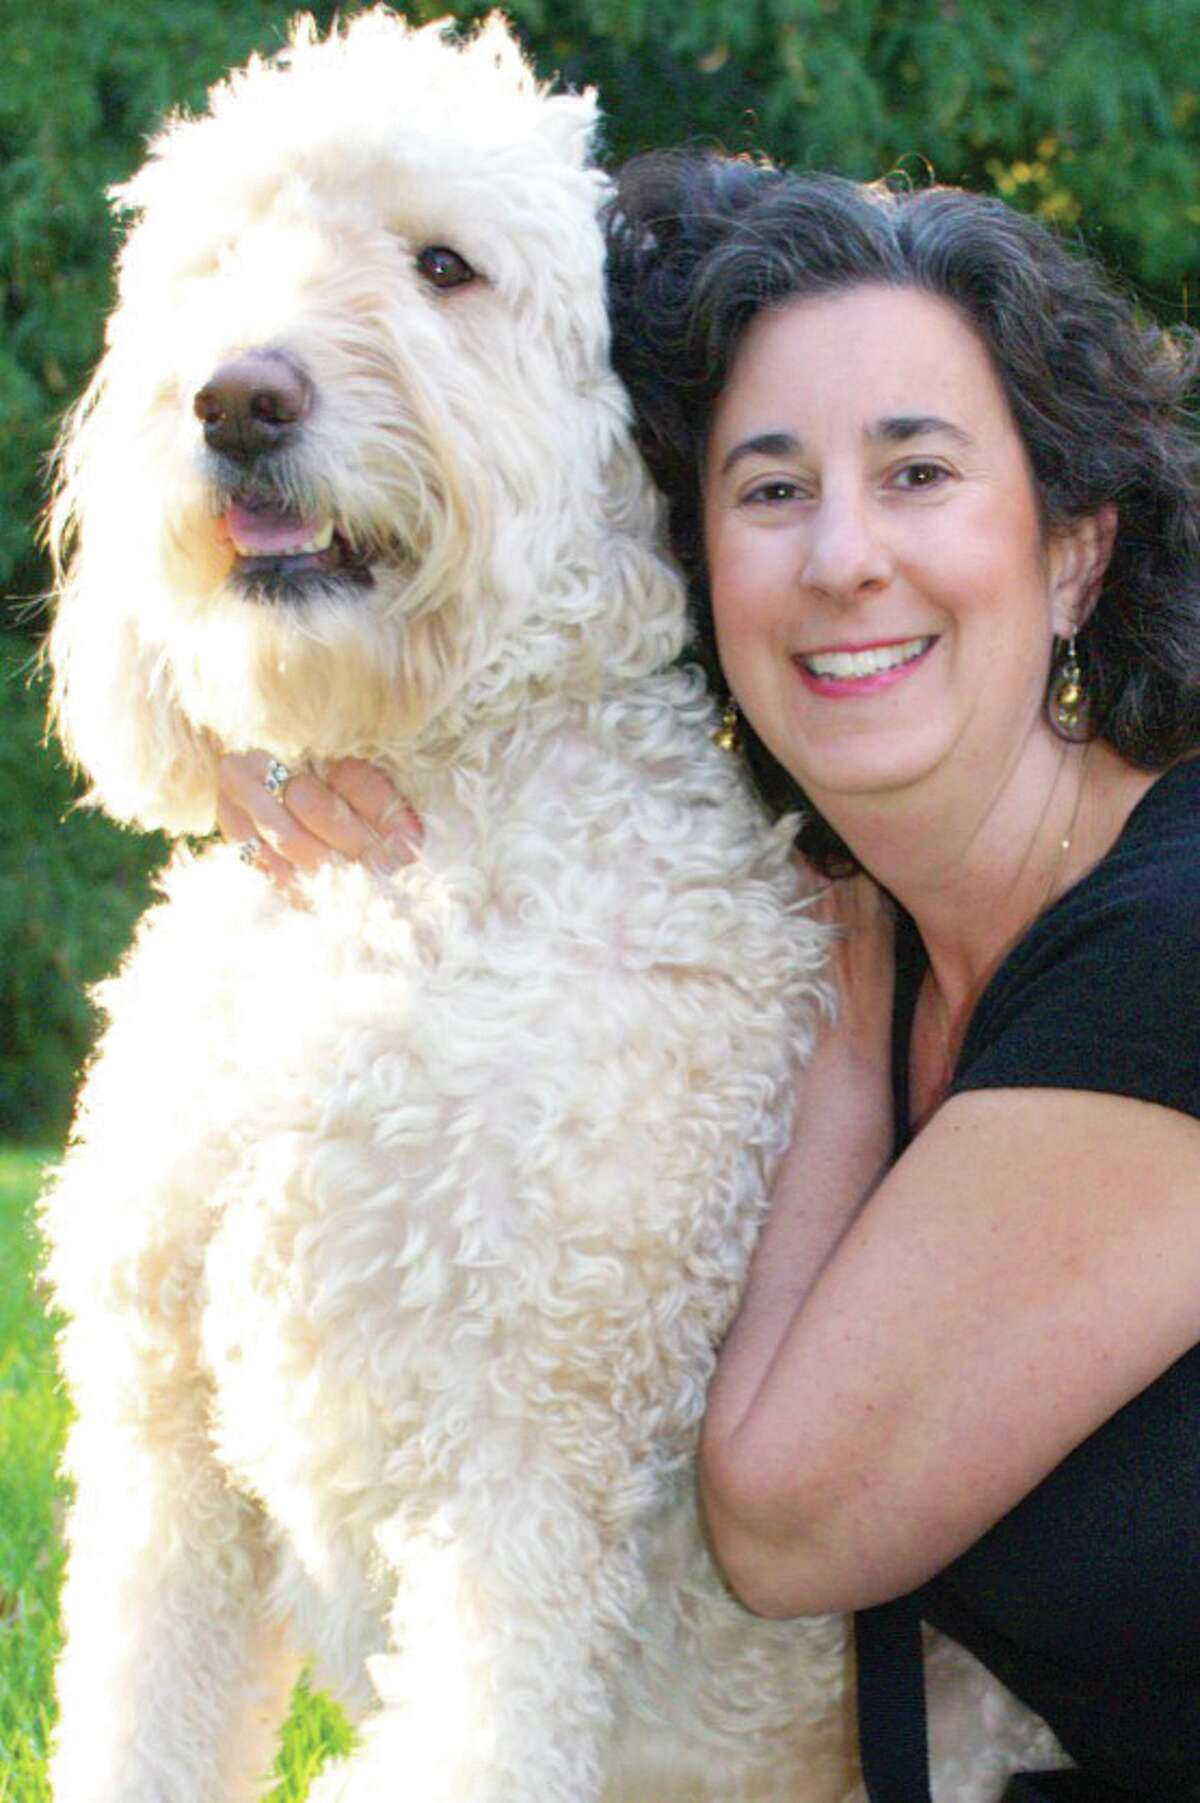 """Capital Region author Nancy Castaldo's new book """"Sniffer Dogs: How Dogs (and Their Noses) Save the World"""" (Houghton, Mifflin, Harcourt, 2014) is filled with information about working dogs that parents will want to learn alongside their kids. (Lucie A. Castaldo)"""